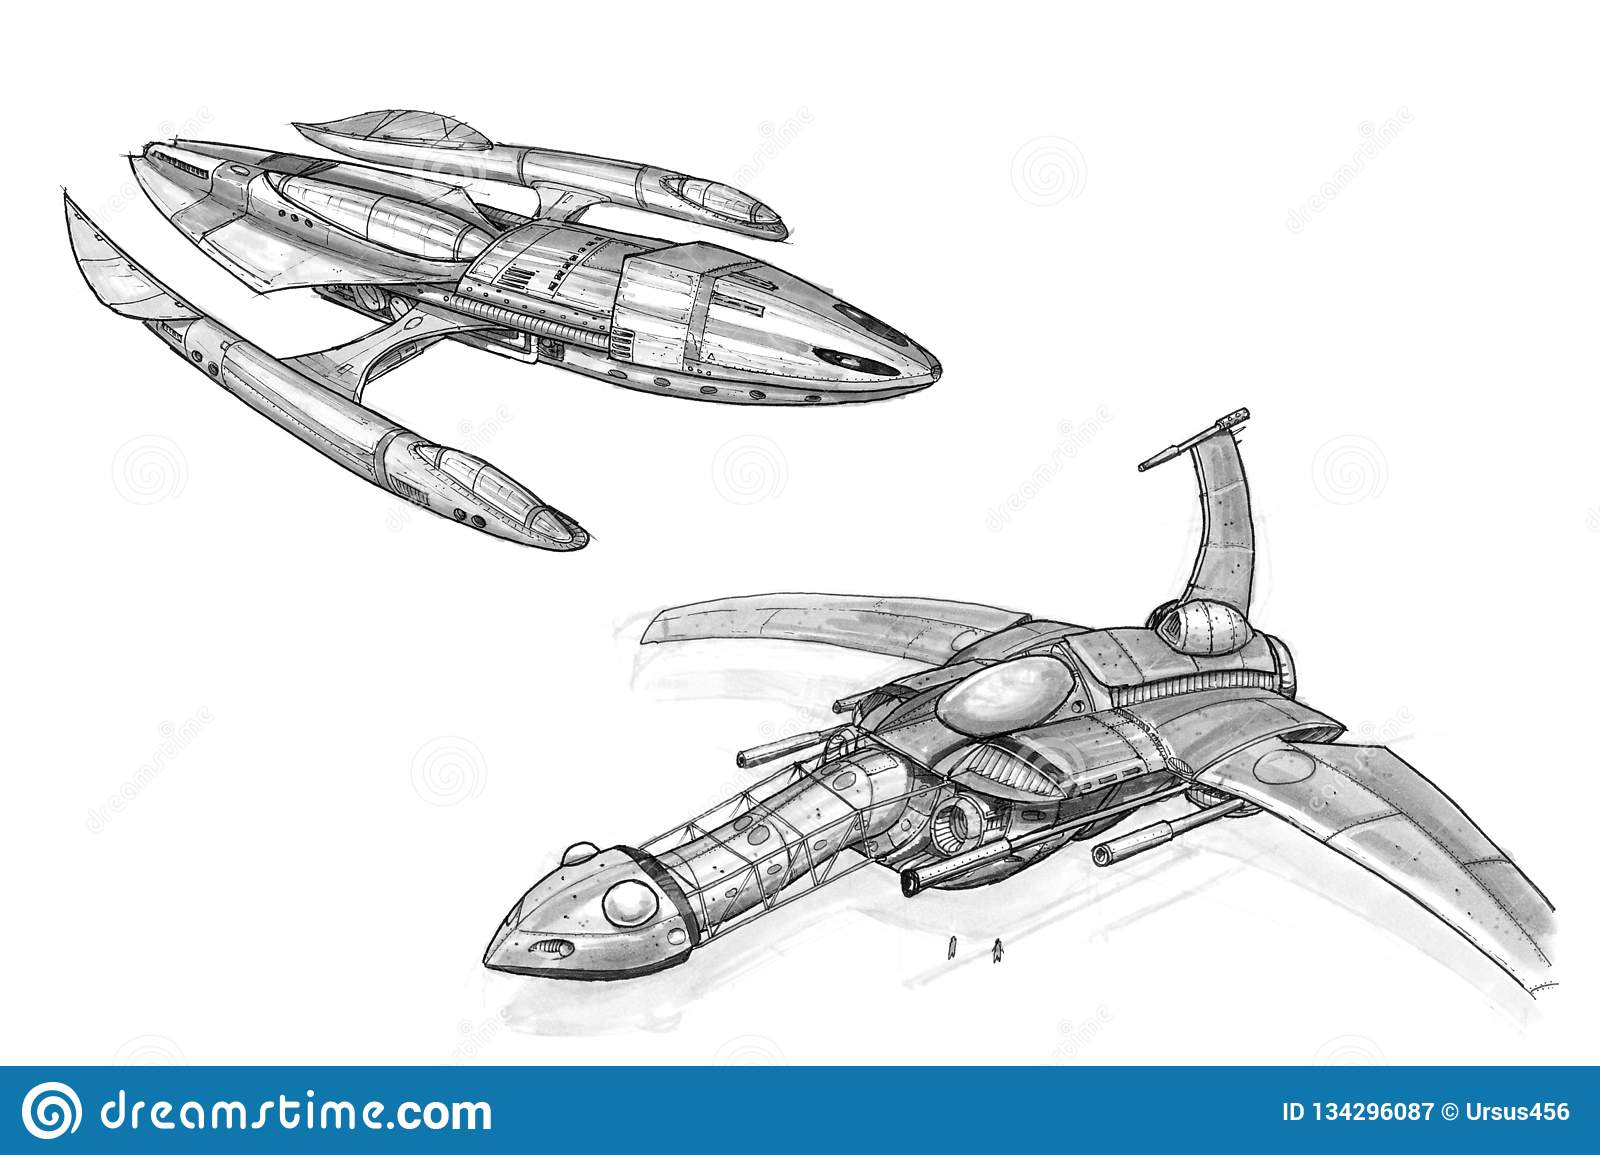 Ink Concept Art Drawing Of Two Futuristic Spaceships Or Spacecrafts